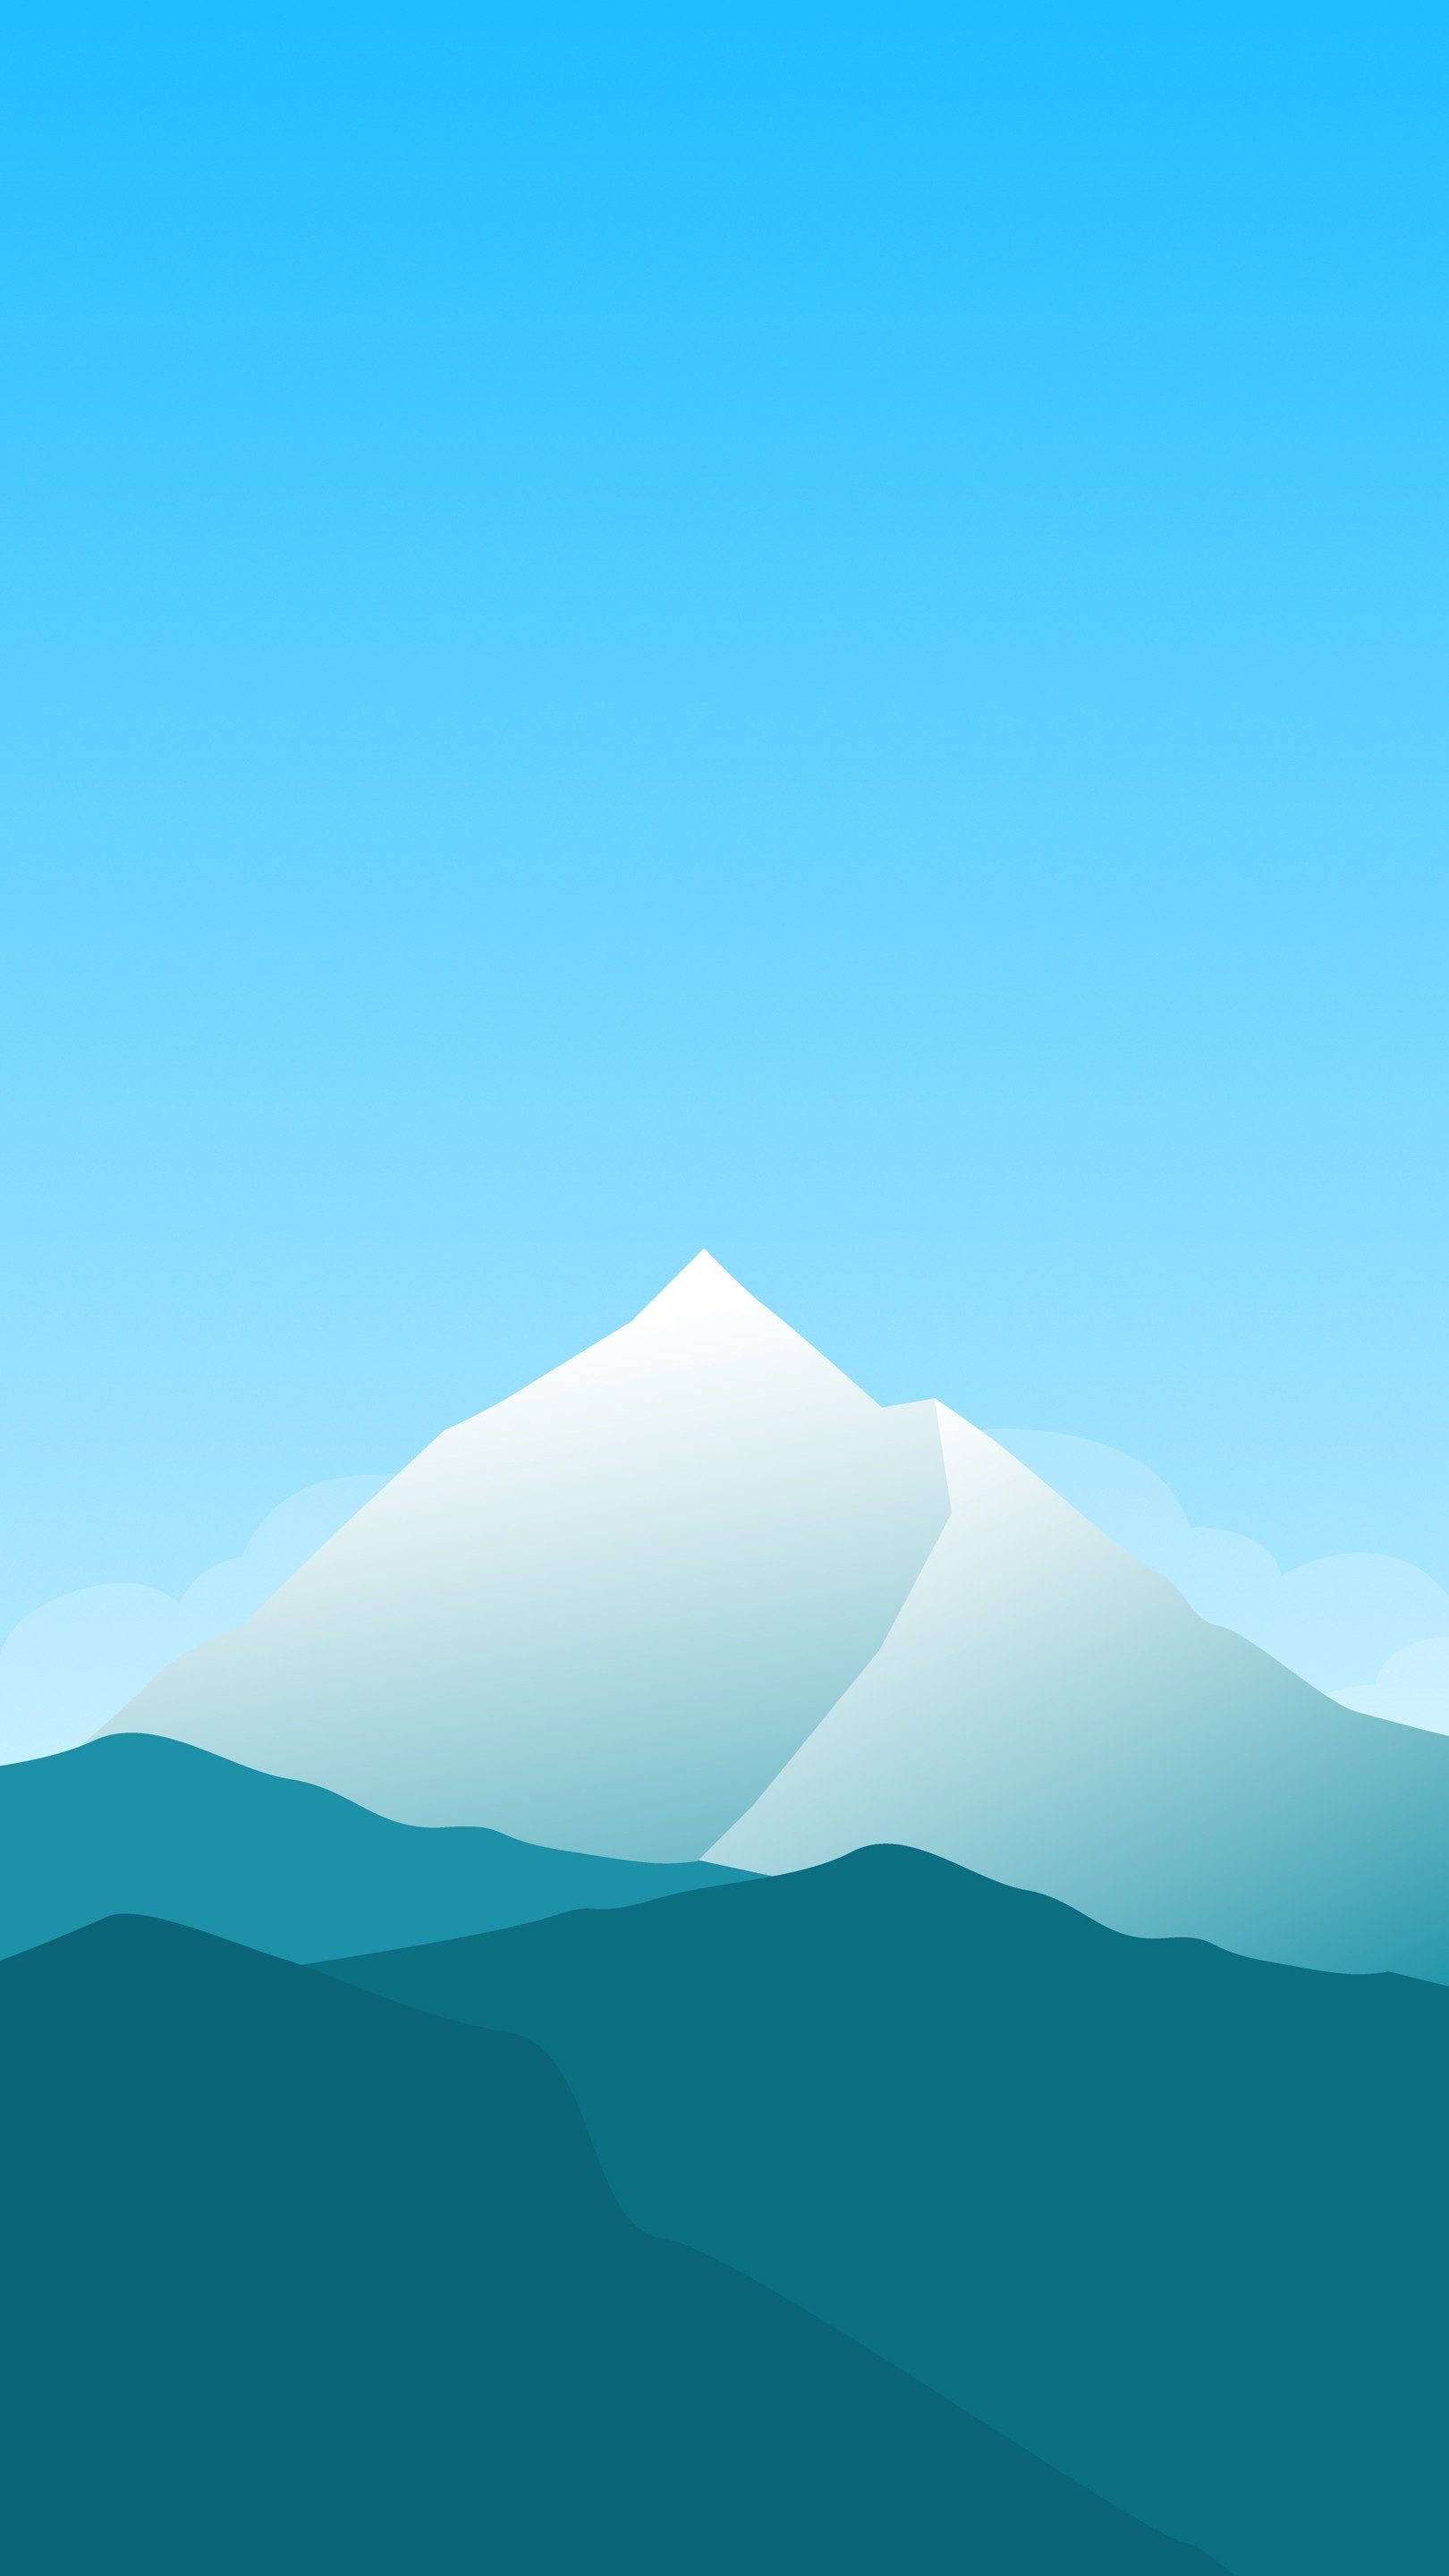 Download 34 Minimalist Wallpapers In Qhd Quality Droidviews